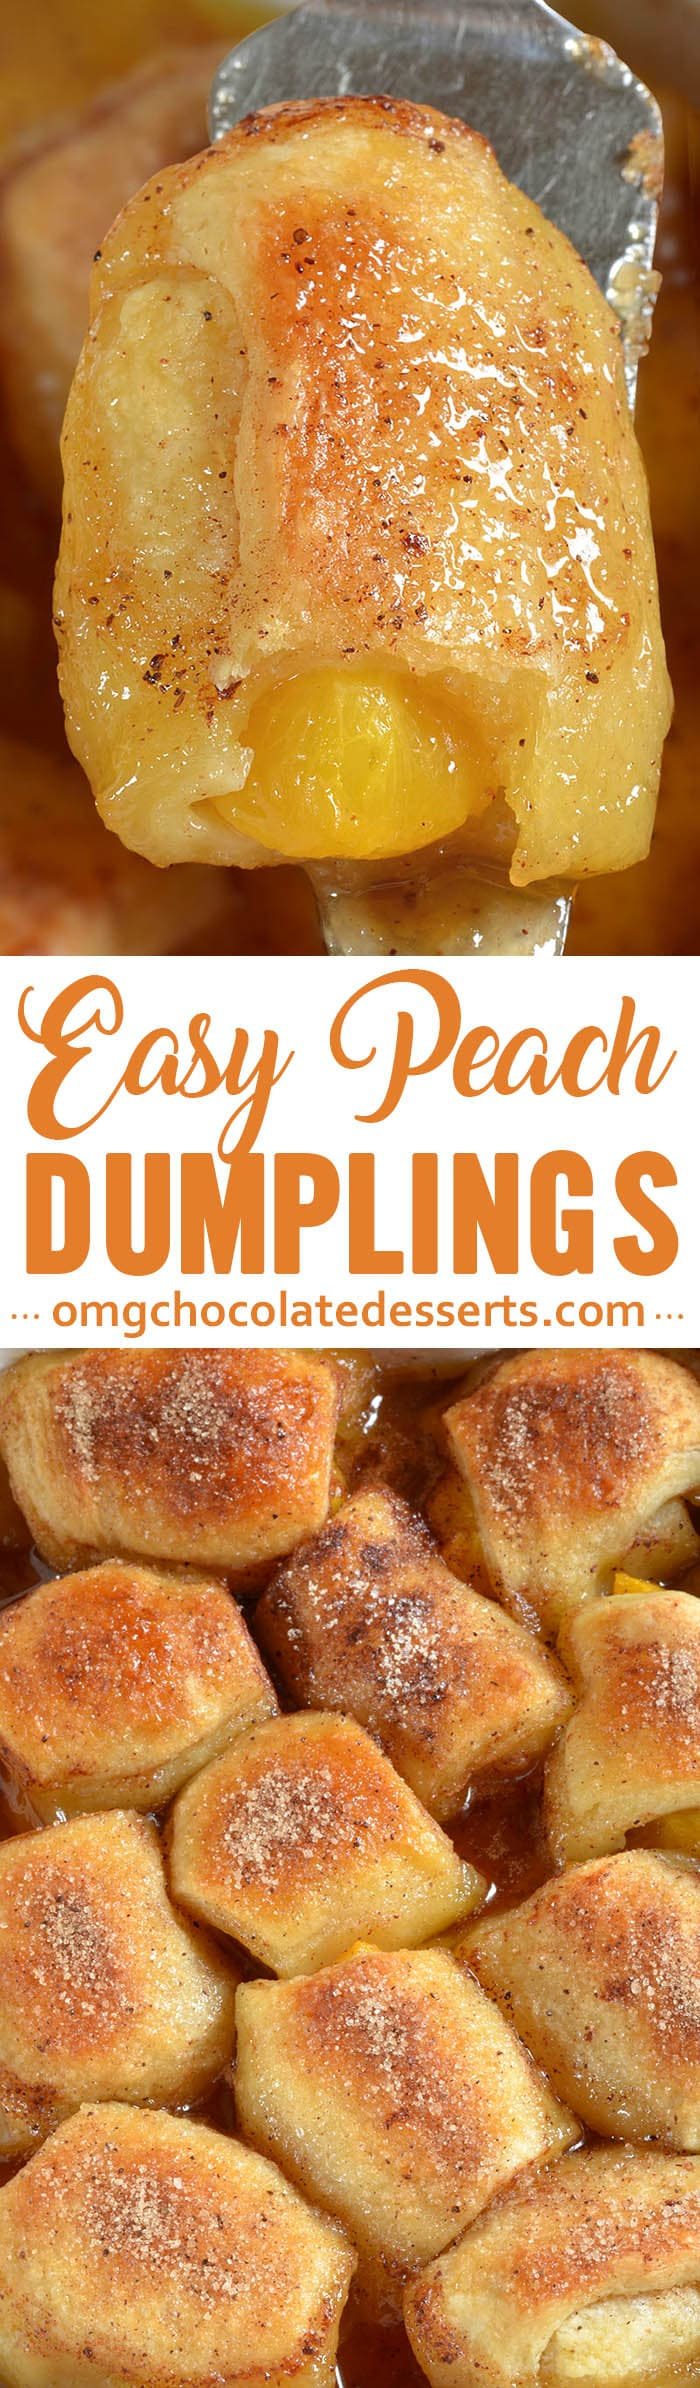 These peach dumplings bake into a delicious, sweet and buttery dessert. Serve warm with a scoop of vanilla ice cream!